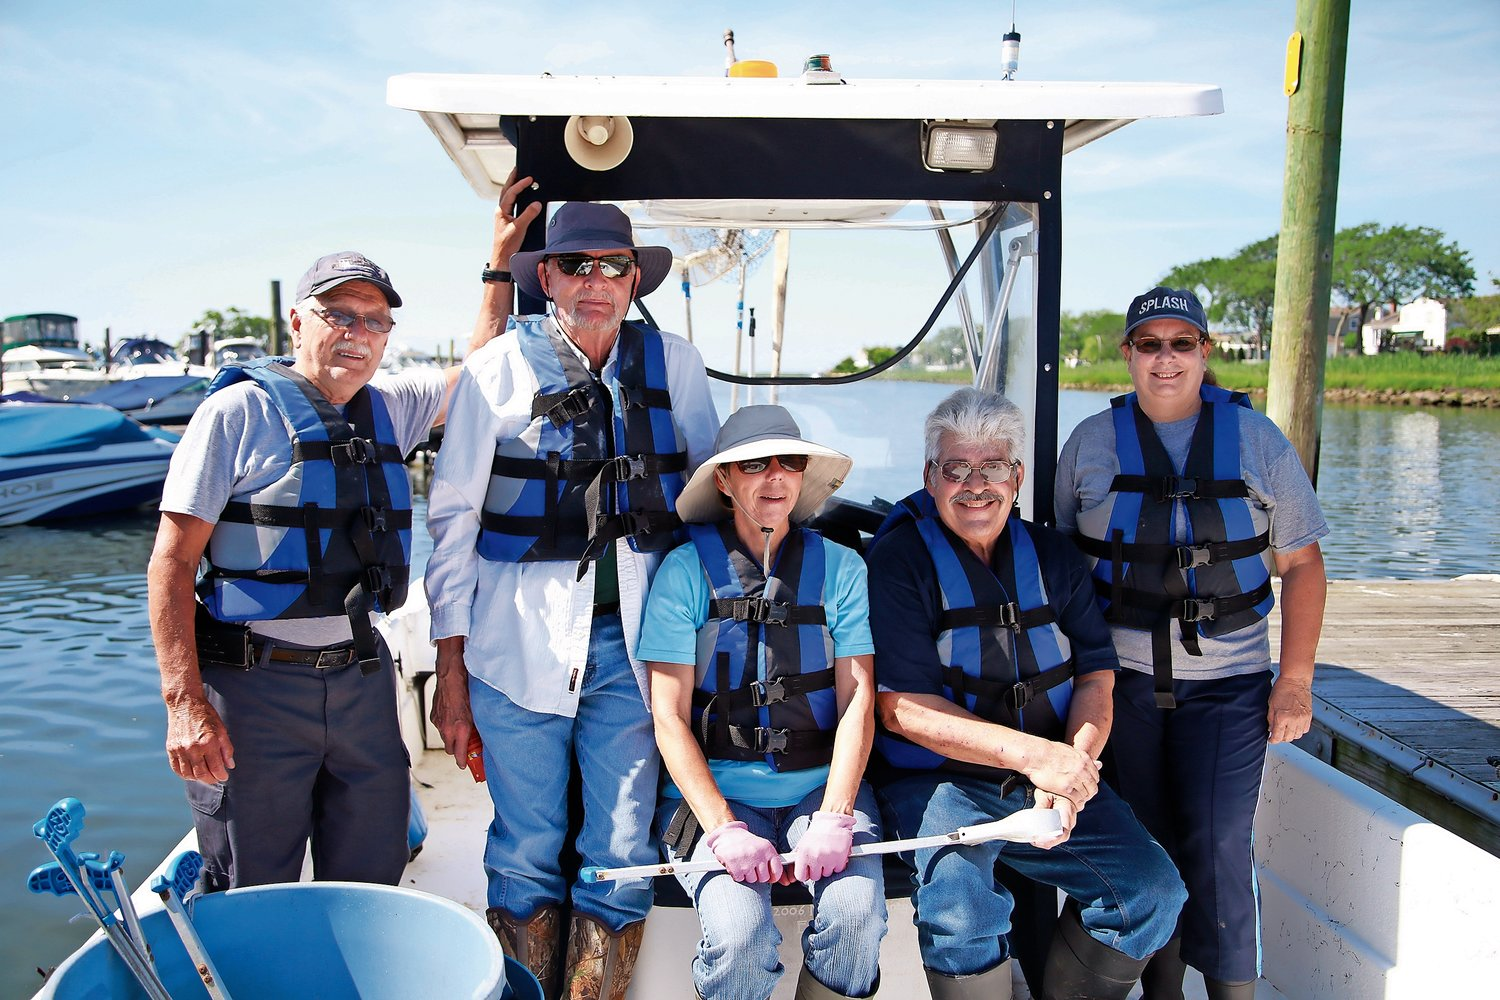 SPLASH volunteers Captain Jim Toporcer, Leo Smith, Sue Zieniewicz, Mike Cacioppo and Carolyn LaRosa patrolled Bellmore's waterways on June 27.